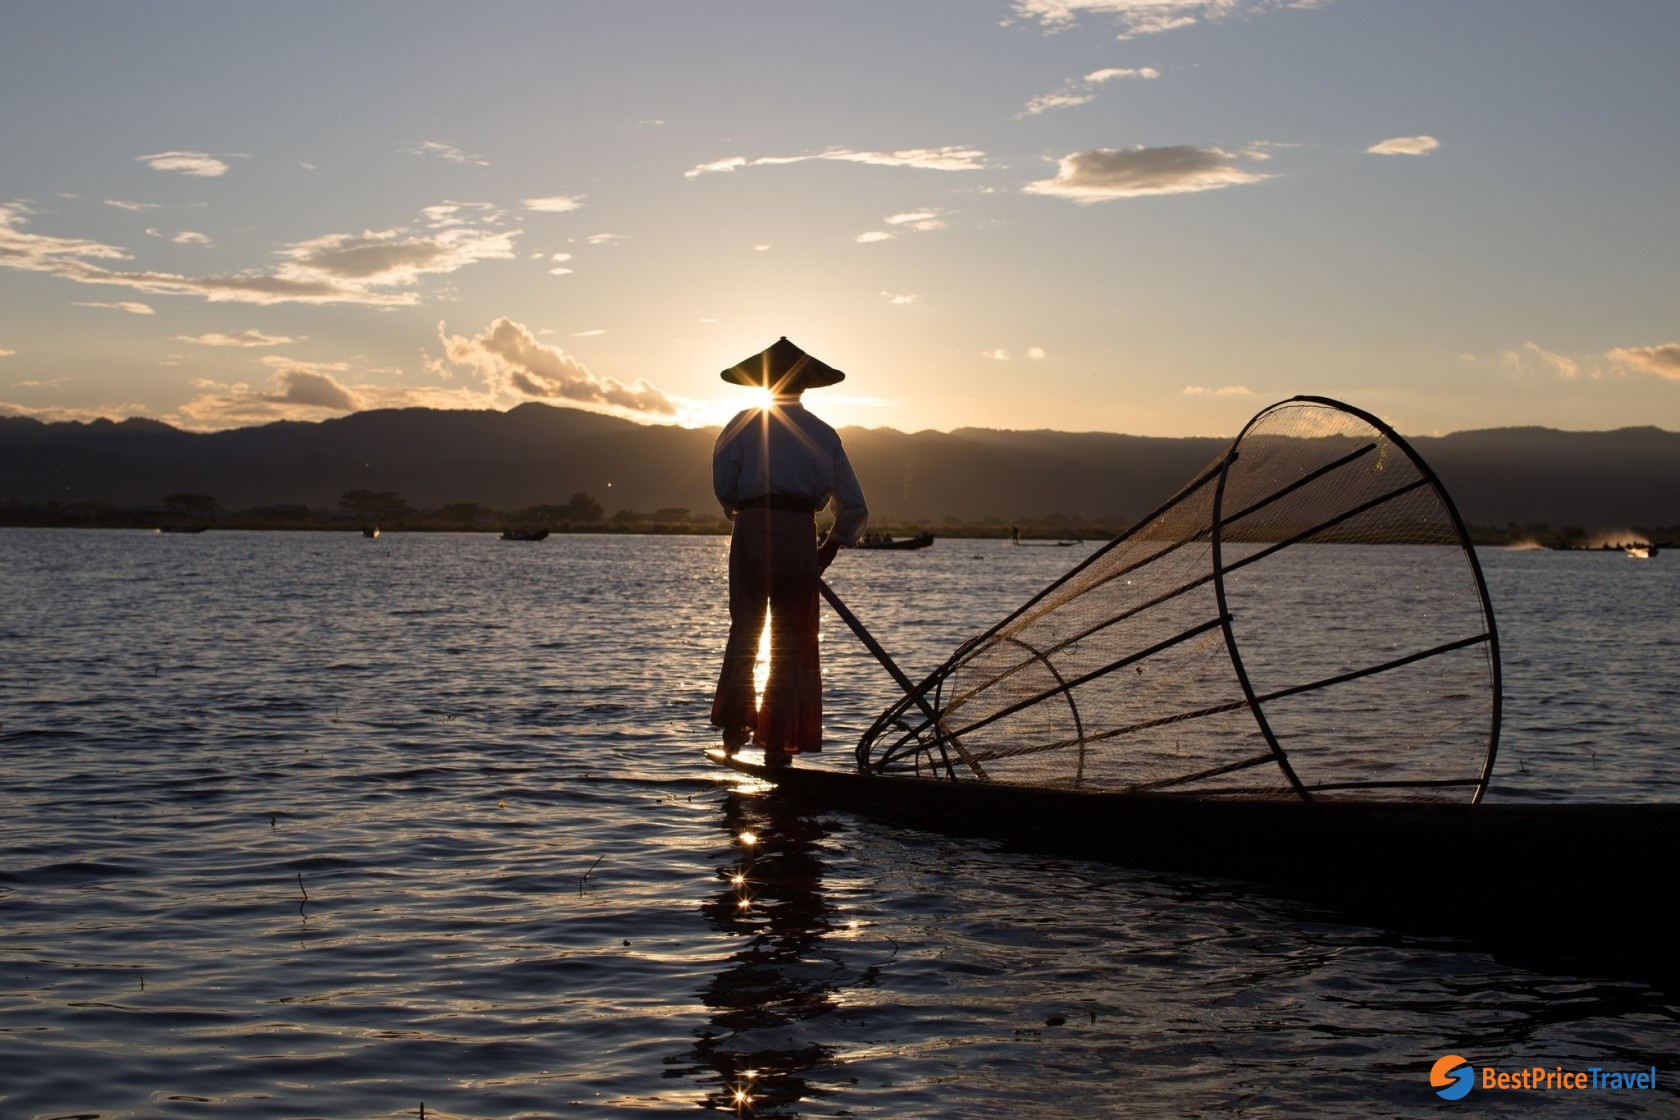 Behold the captivating scenery on Inle Lake